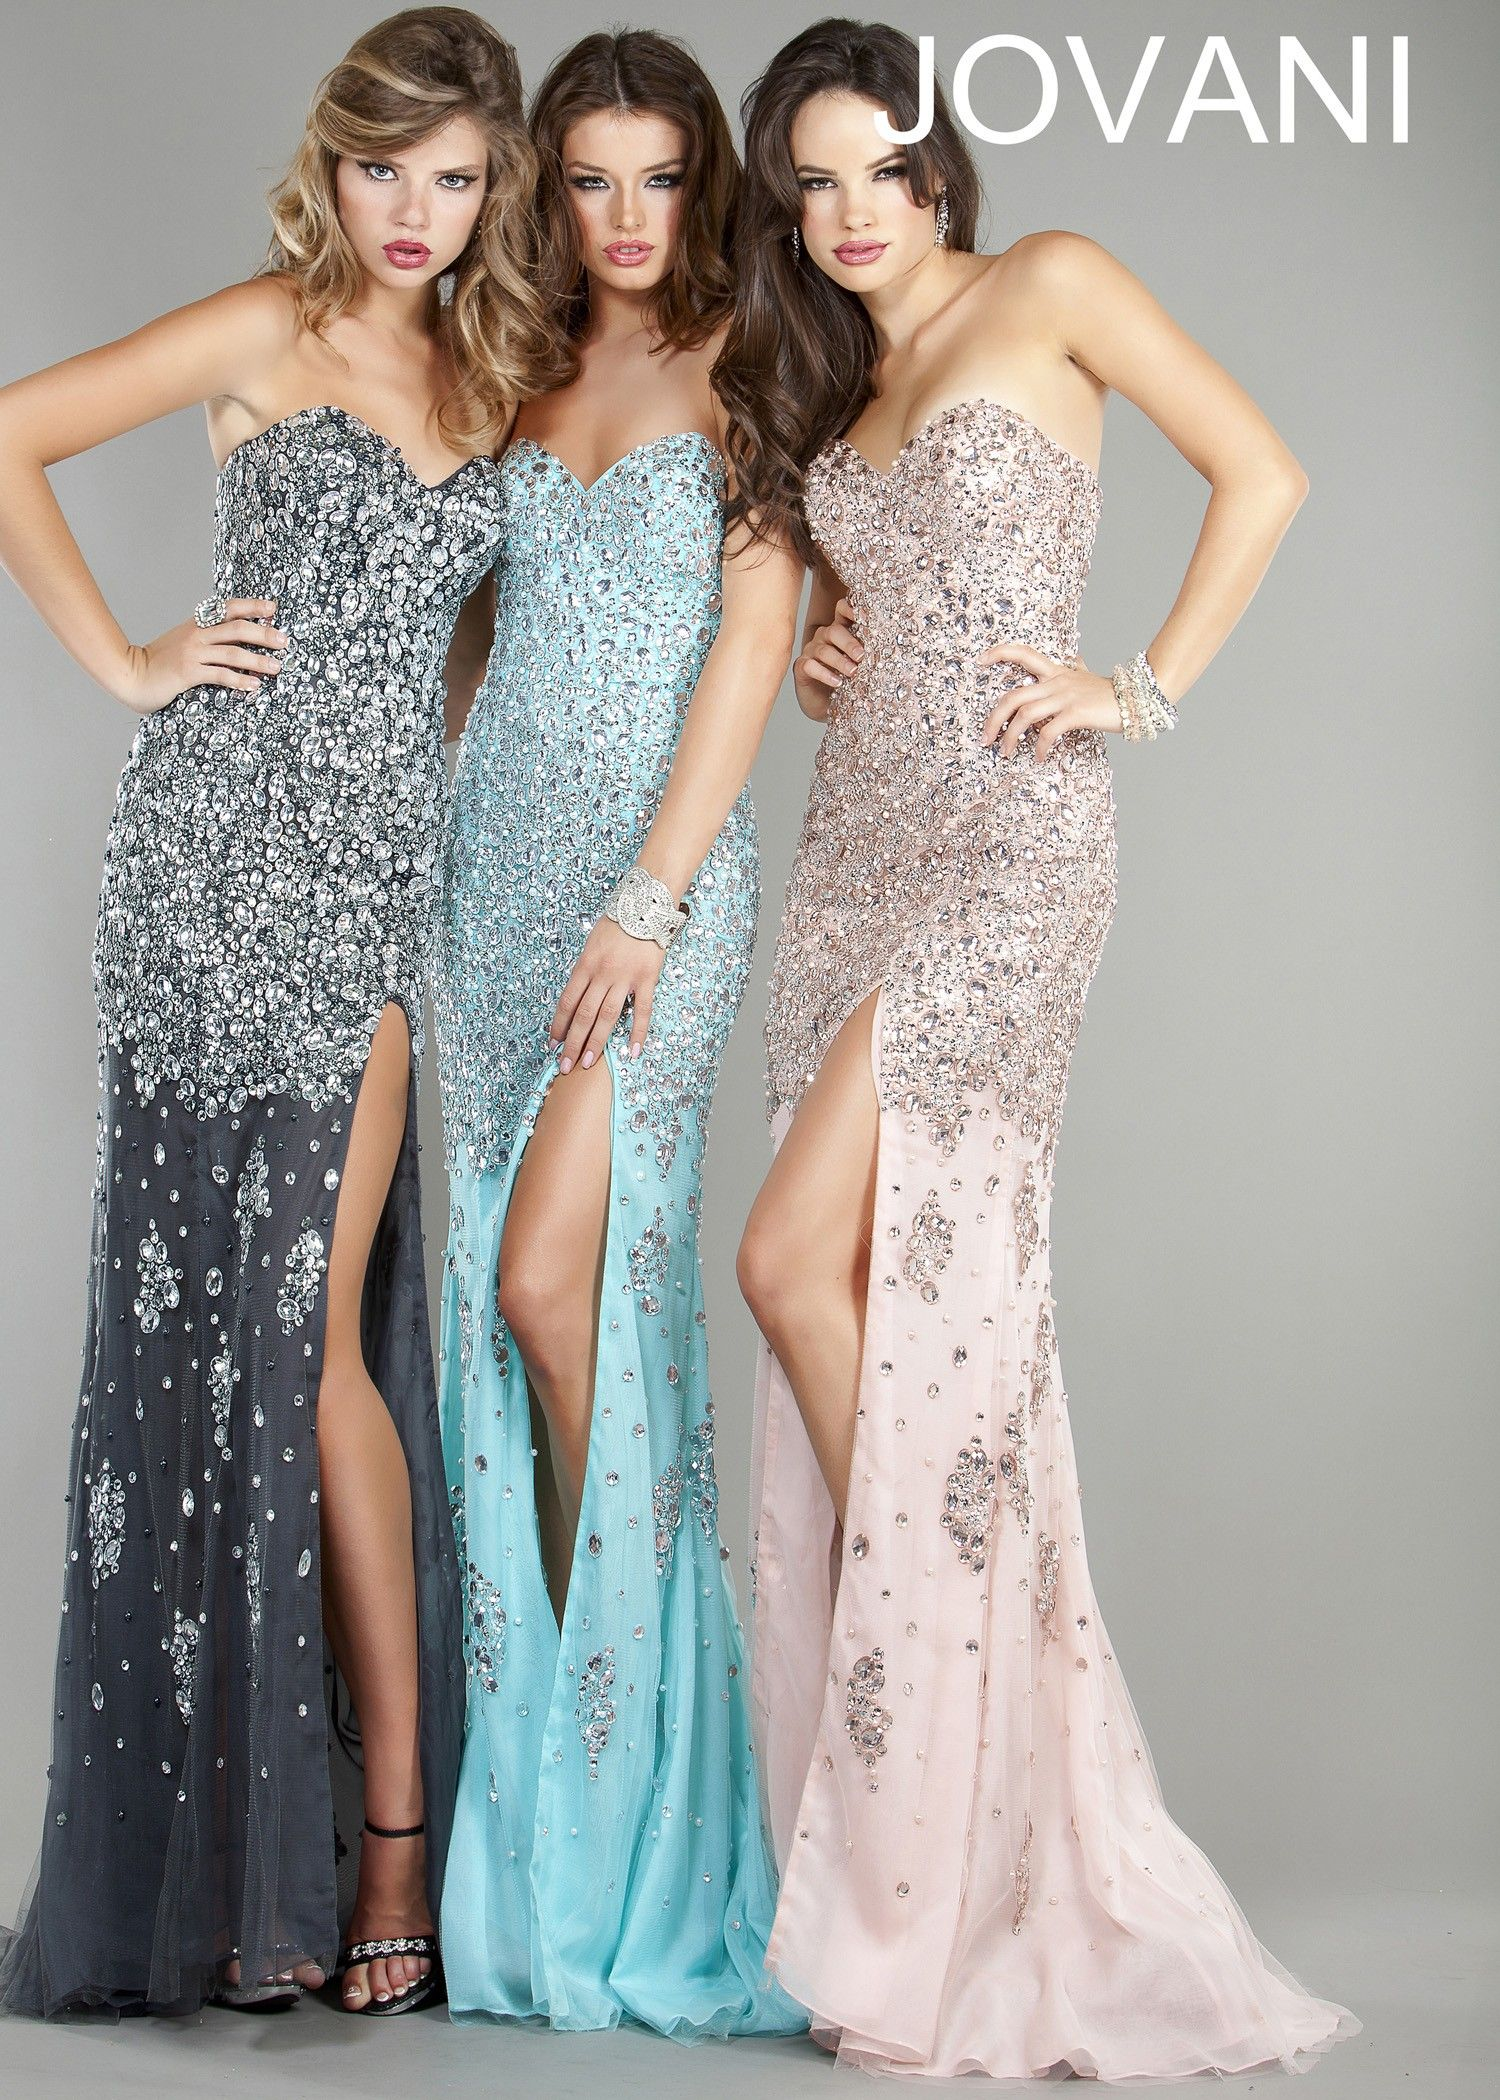 Jovani 4247 Beaded Long Dress | Beaded evening gowns, Gowns and Prom